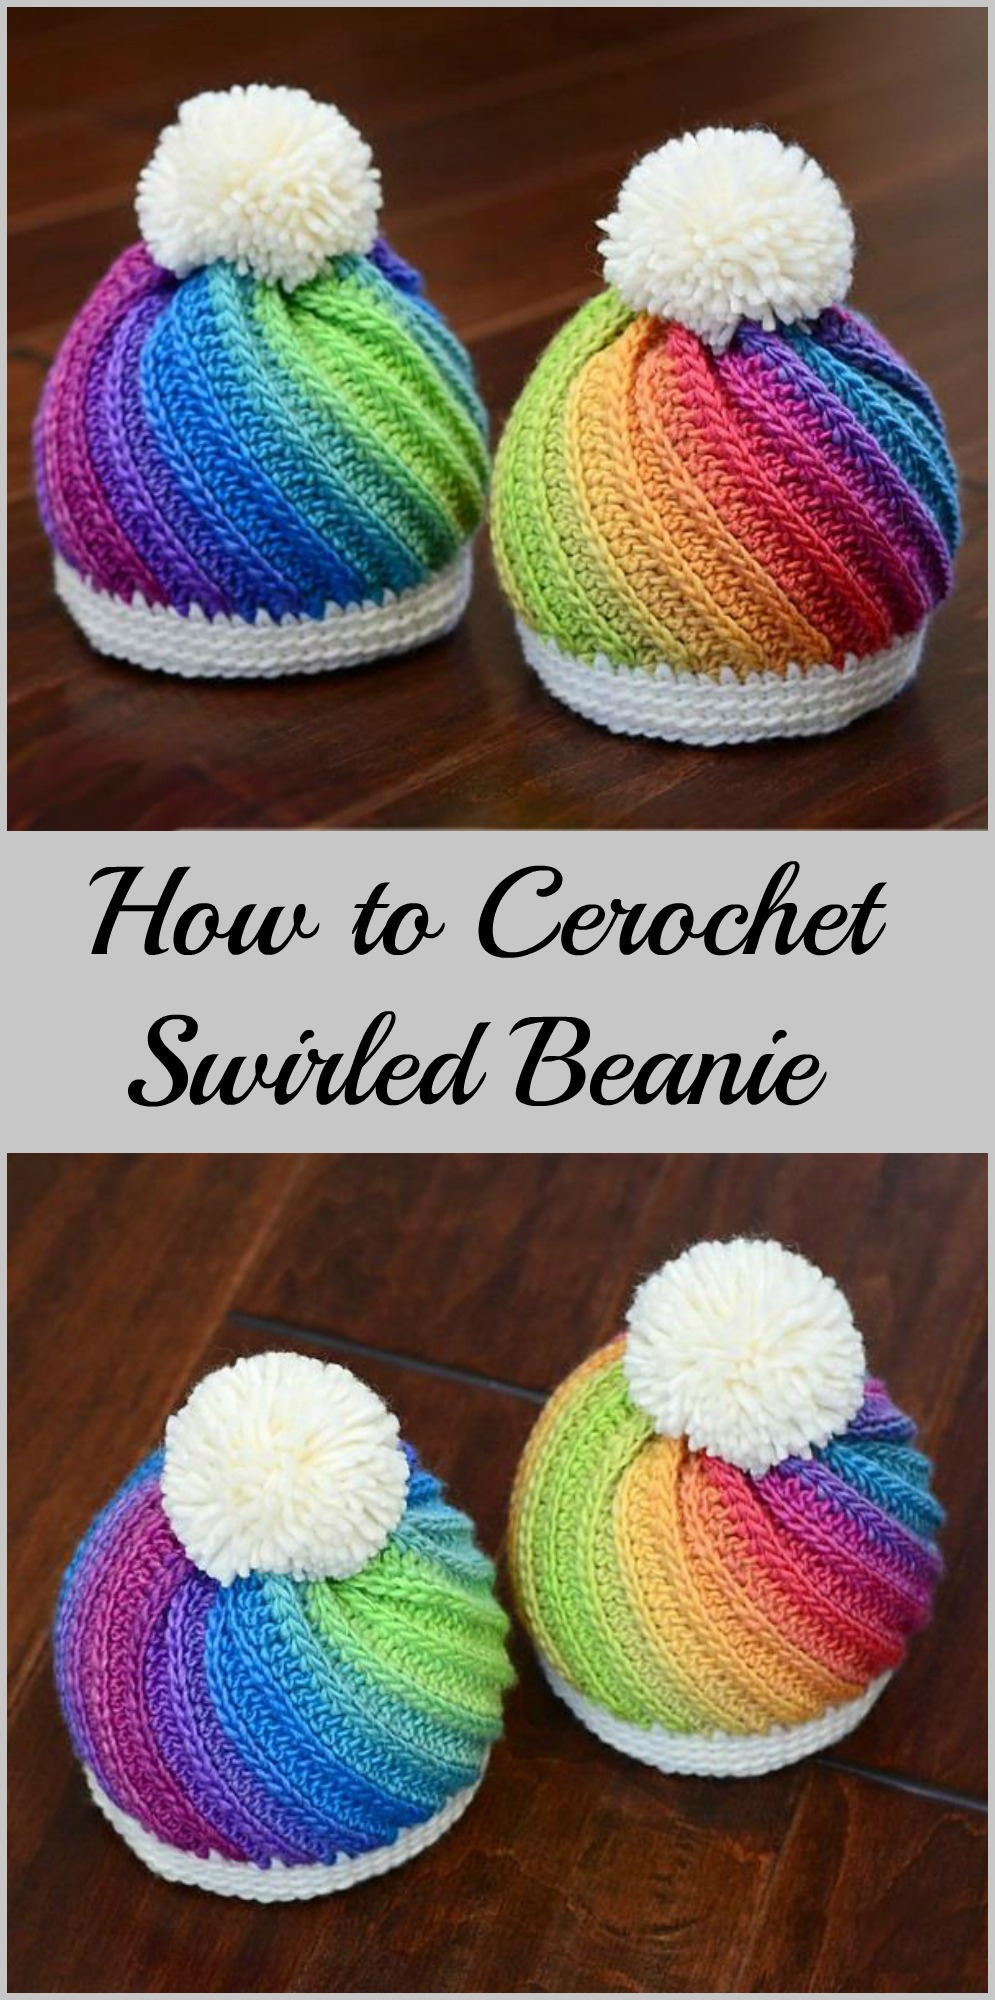 Crochet Swirled Beanie Pretty Ideas